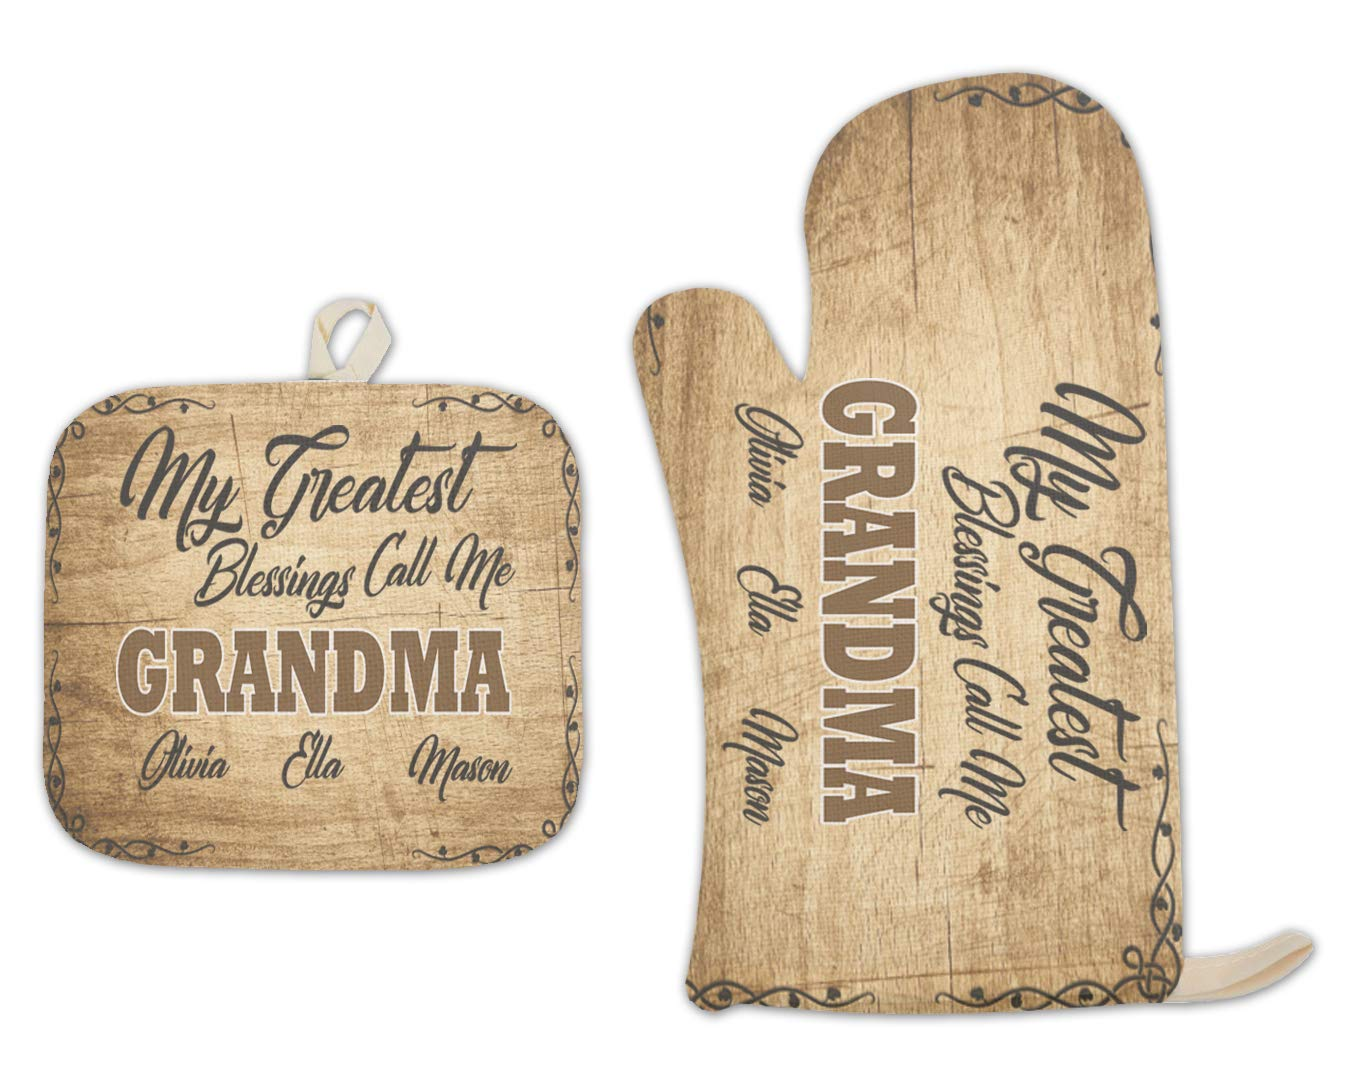 BRGiftShop Personalized Custom Name My Greatest Blessings Call Me Grandma Linen Oven Mitt and Potholder Set